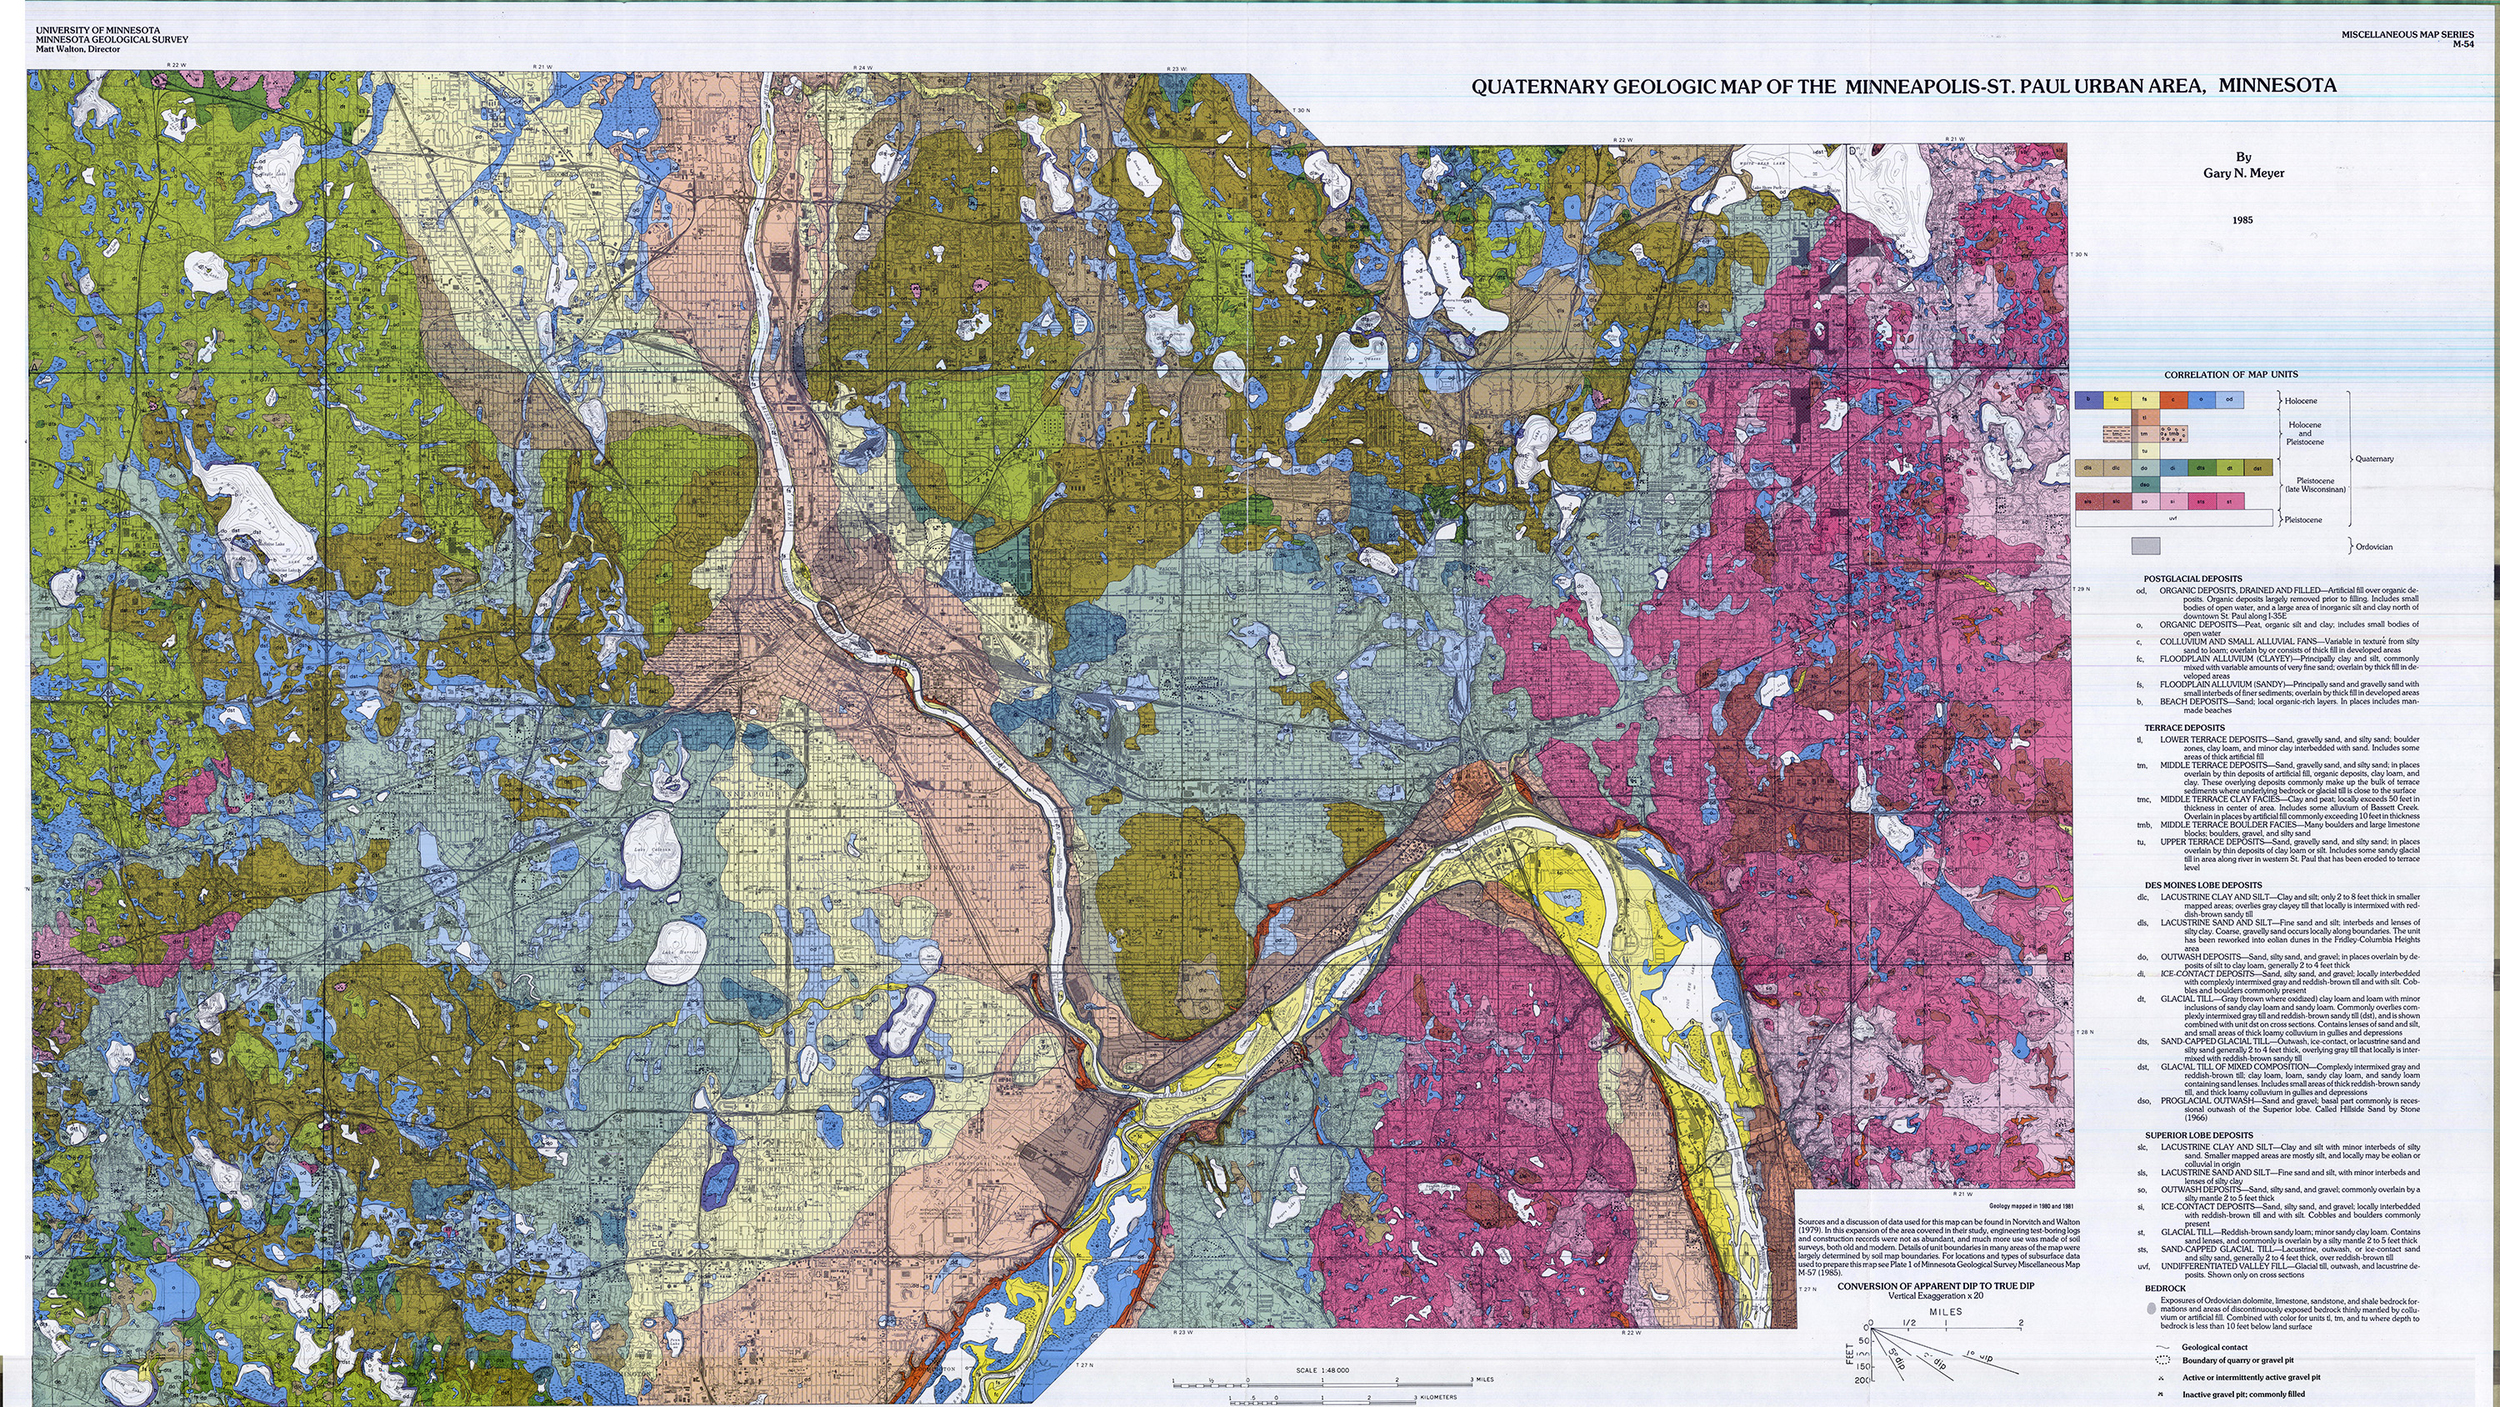 Geological map of Minneapolis showing glacial deposits over time. (Courtesy UMN / Minnesota Geological Survey)